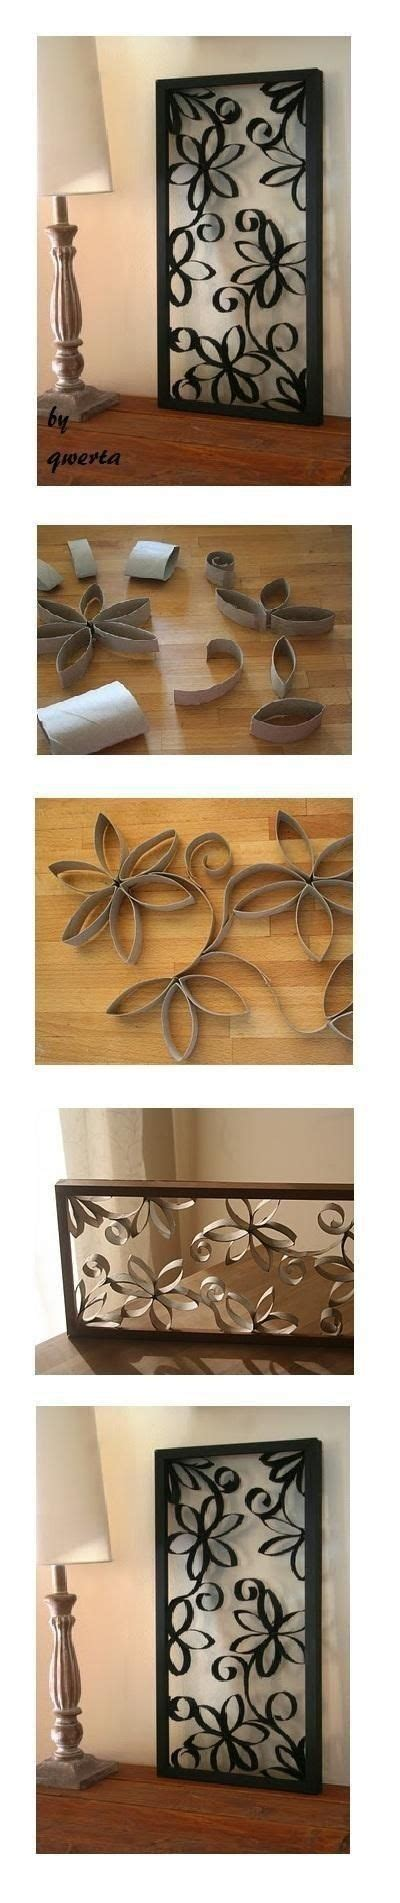 diy toilet paper roll wall decoration toilets larger